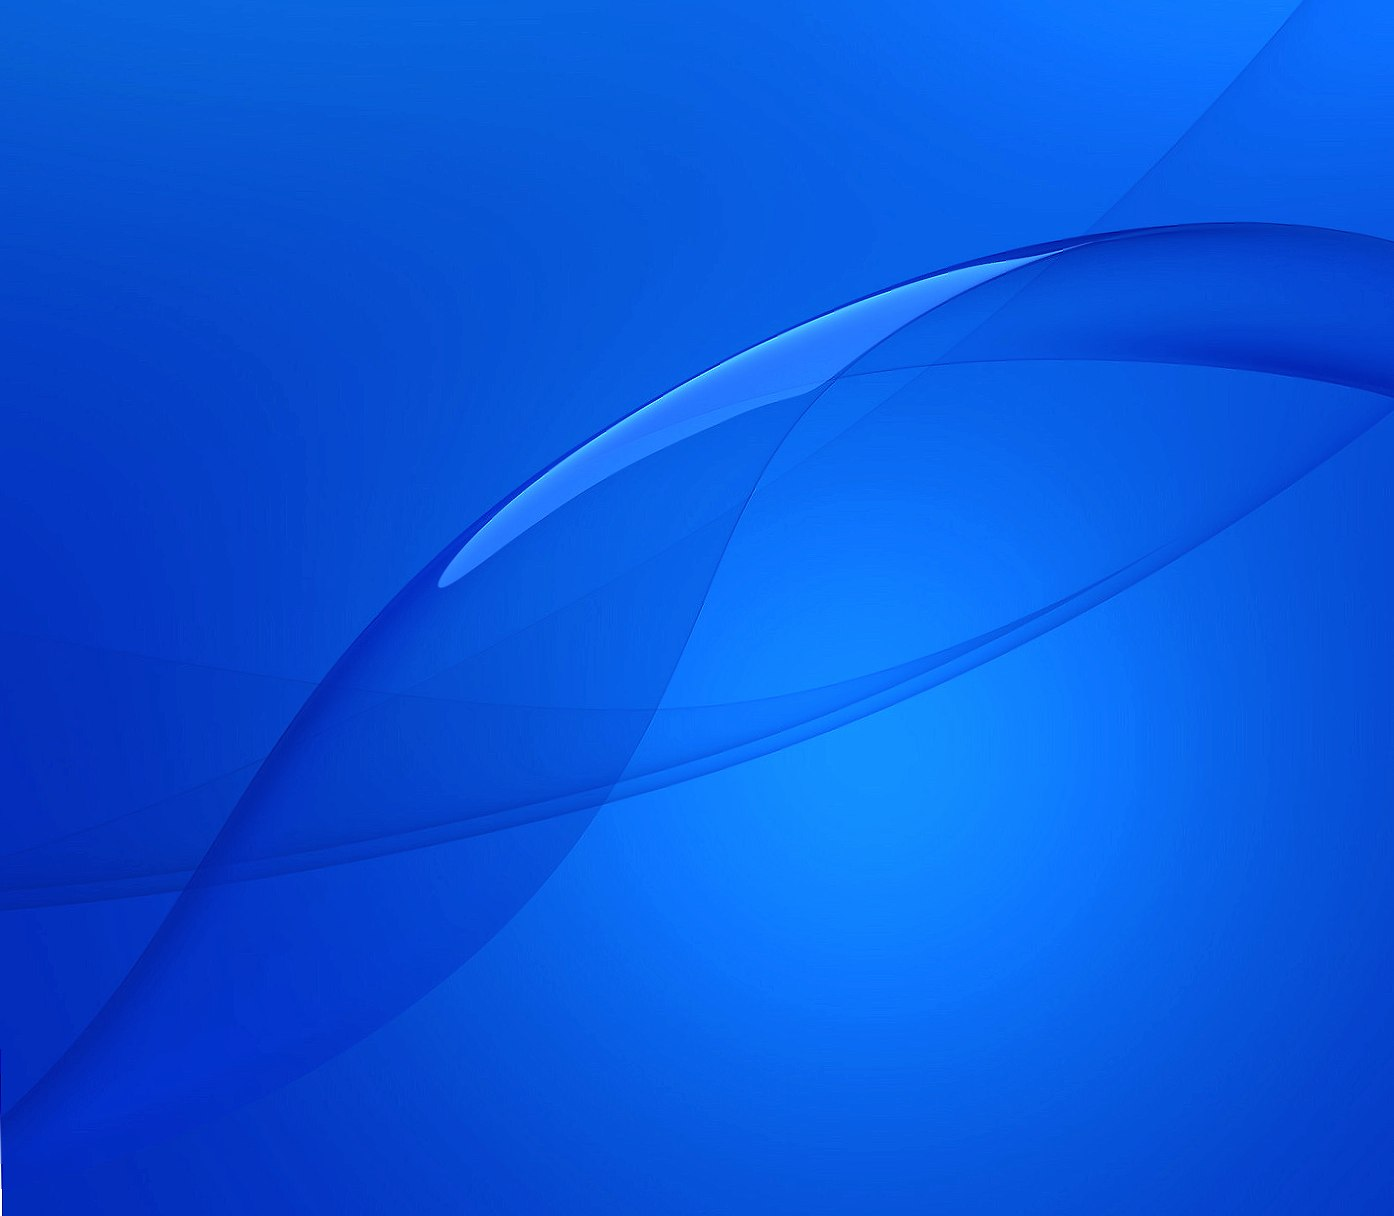 Xperia Z3 wallpapers HD quality